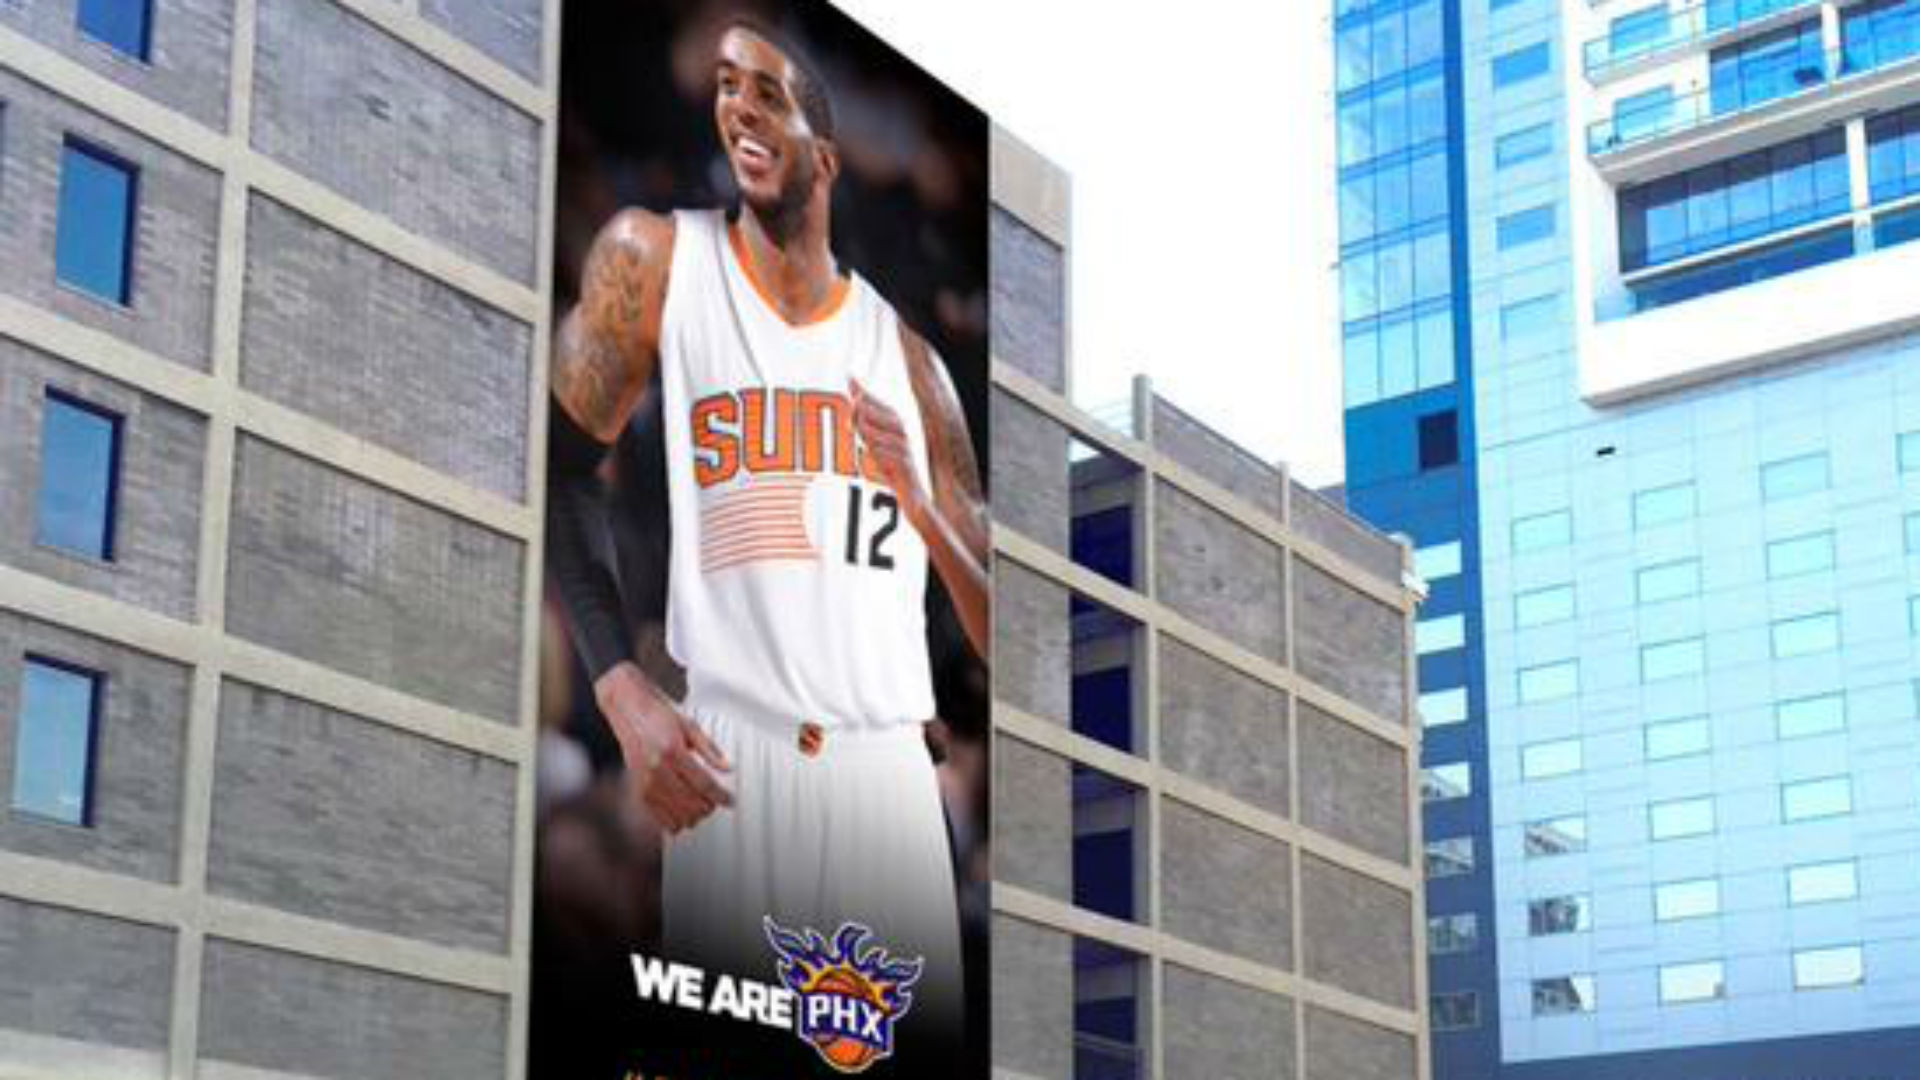 Phoenix mayor reveals LaMarcus Aldridge billboard